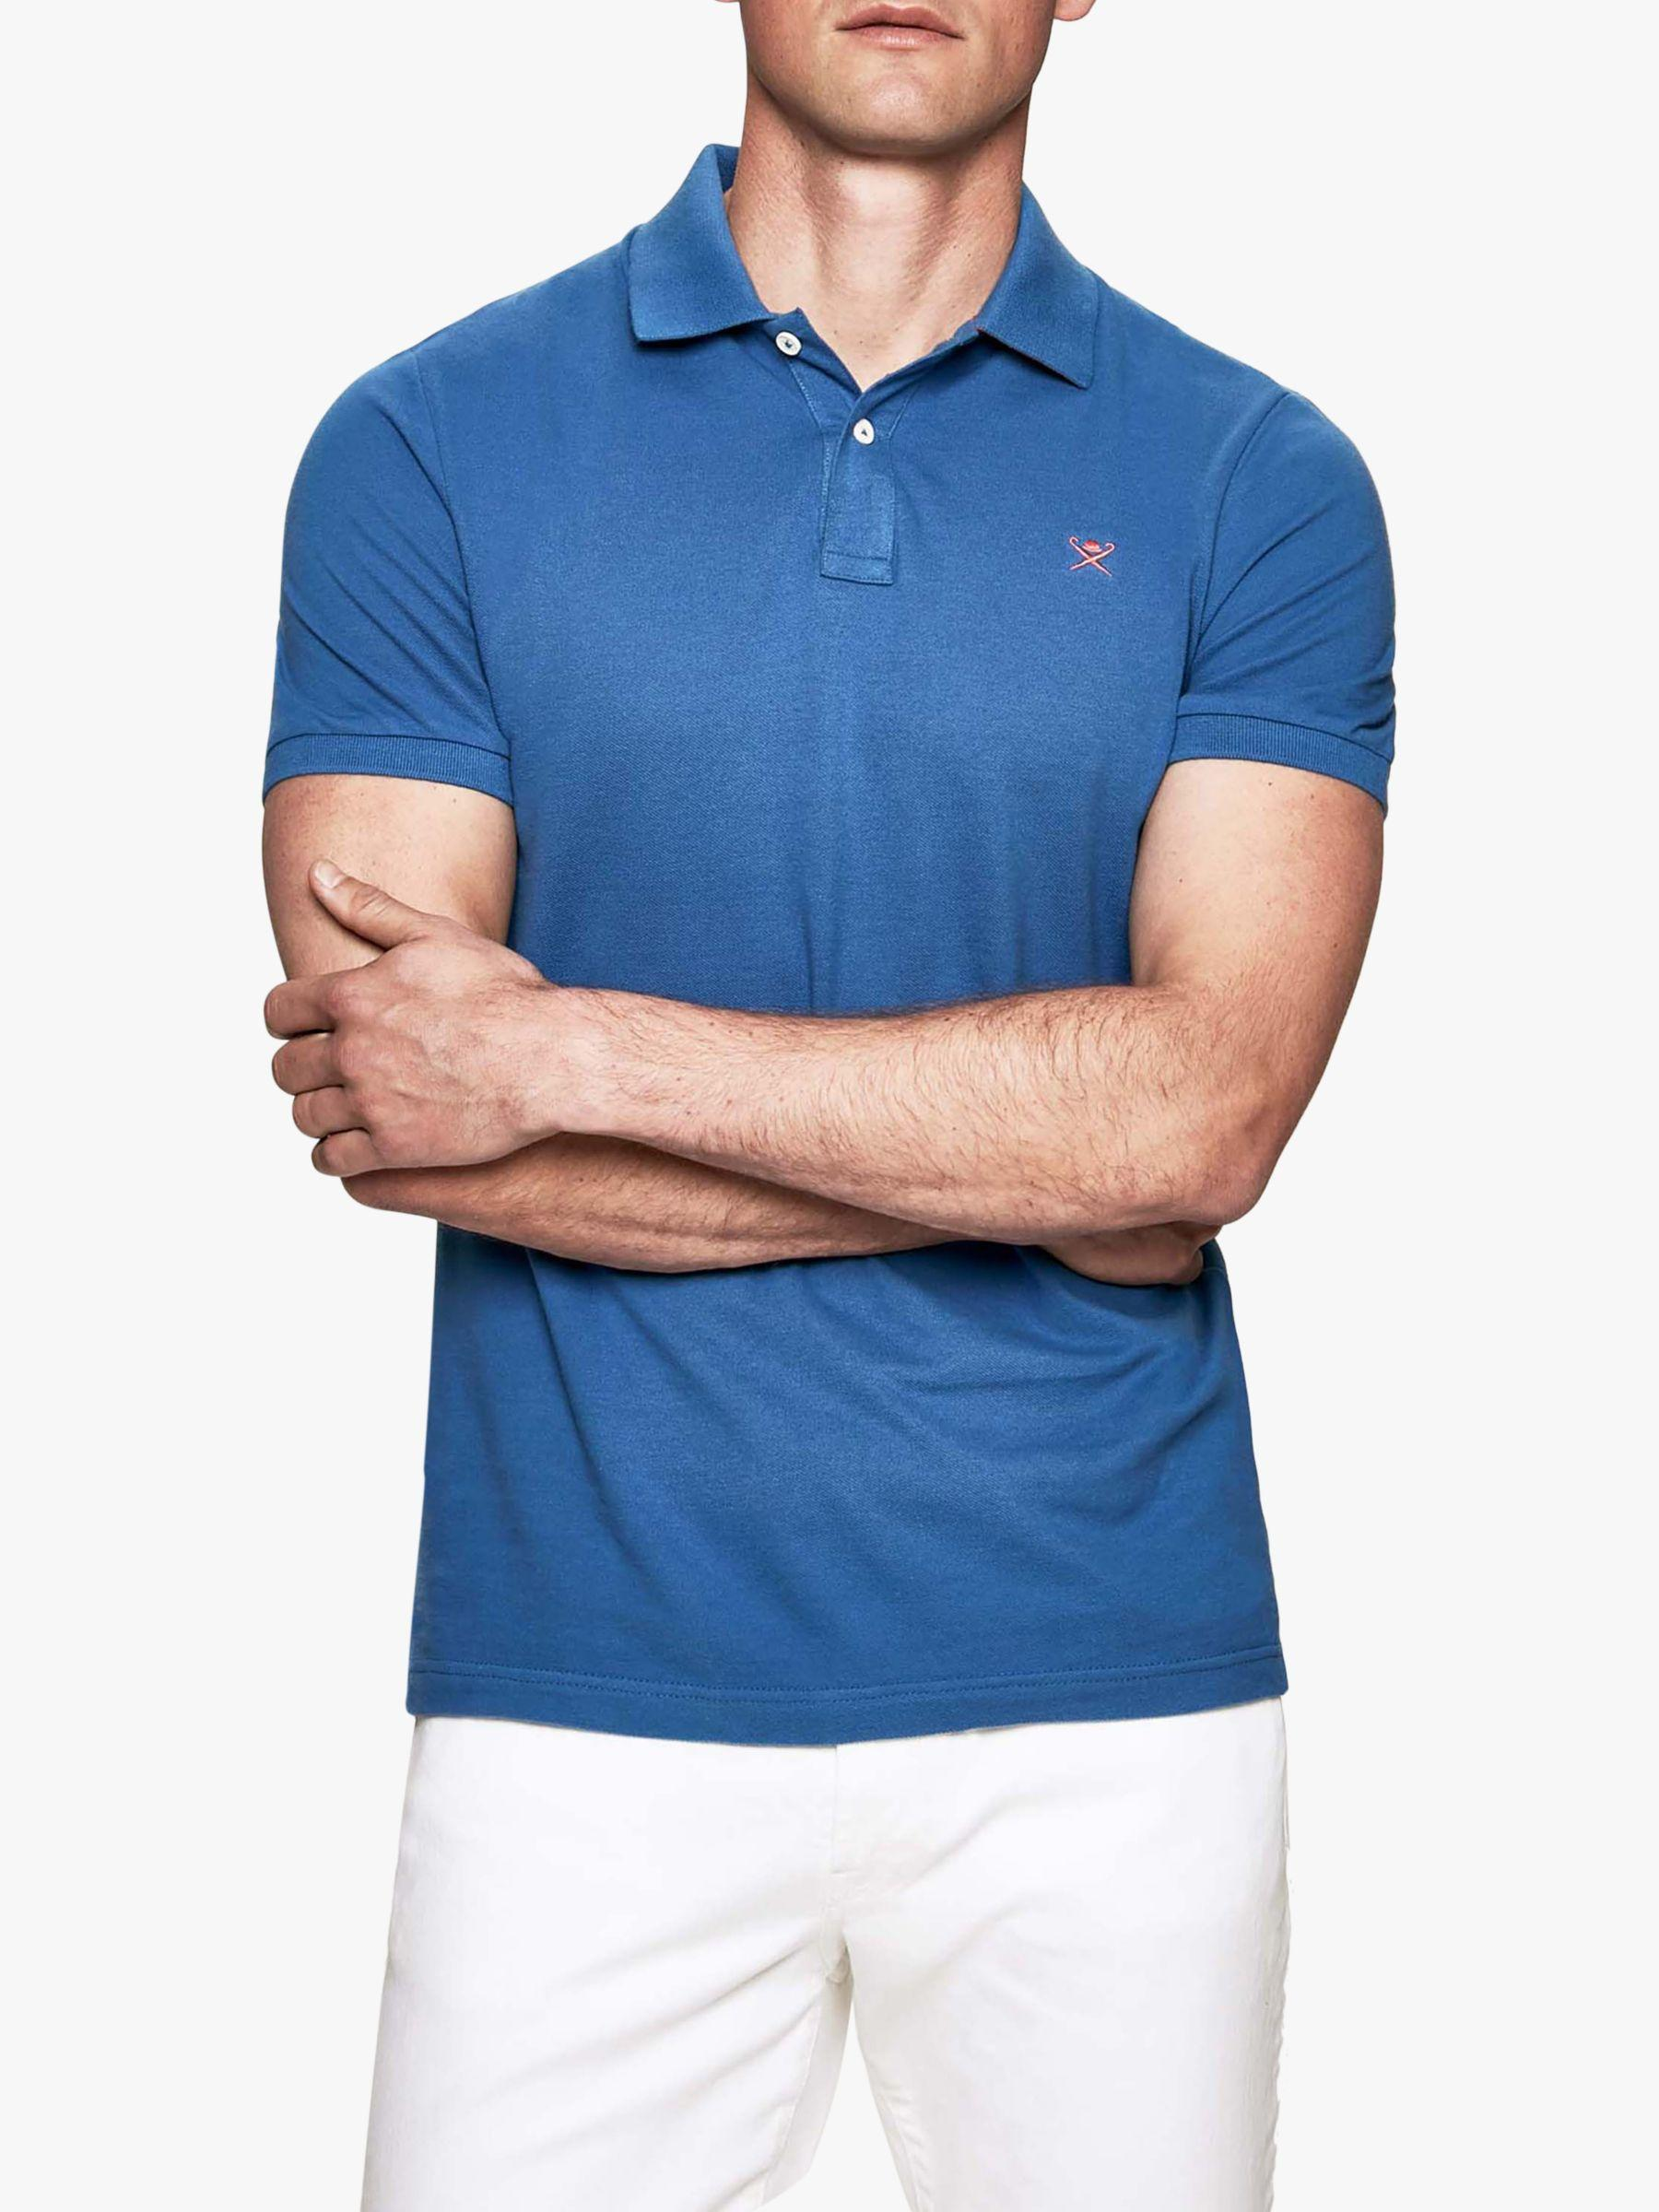 fd002a86 Hackett. Men's Blue Short Sleeve Logo Polo Shirt. £52 From John Lewis and  Partners